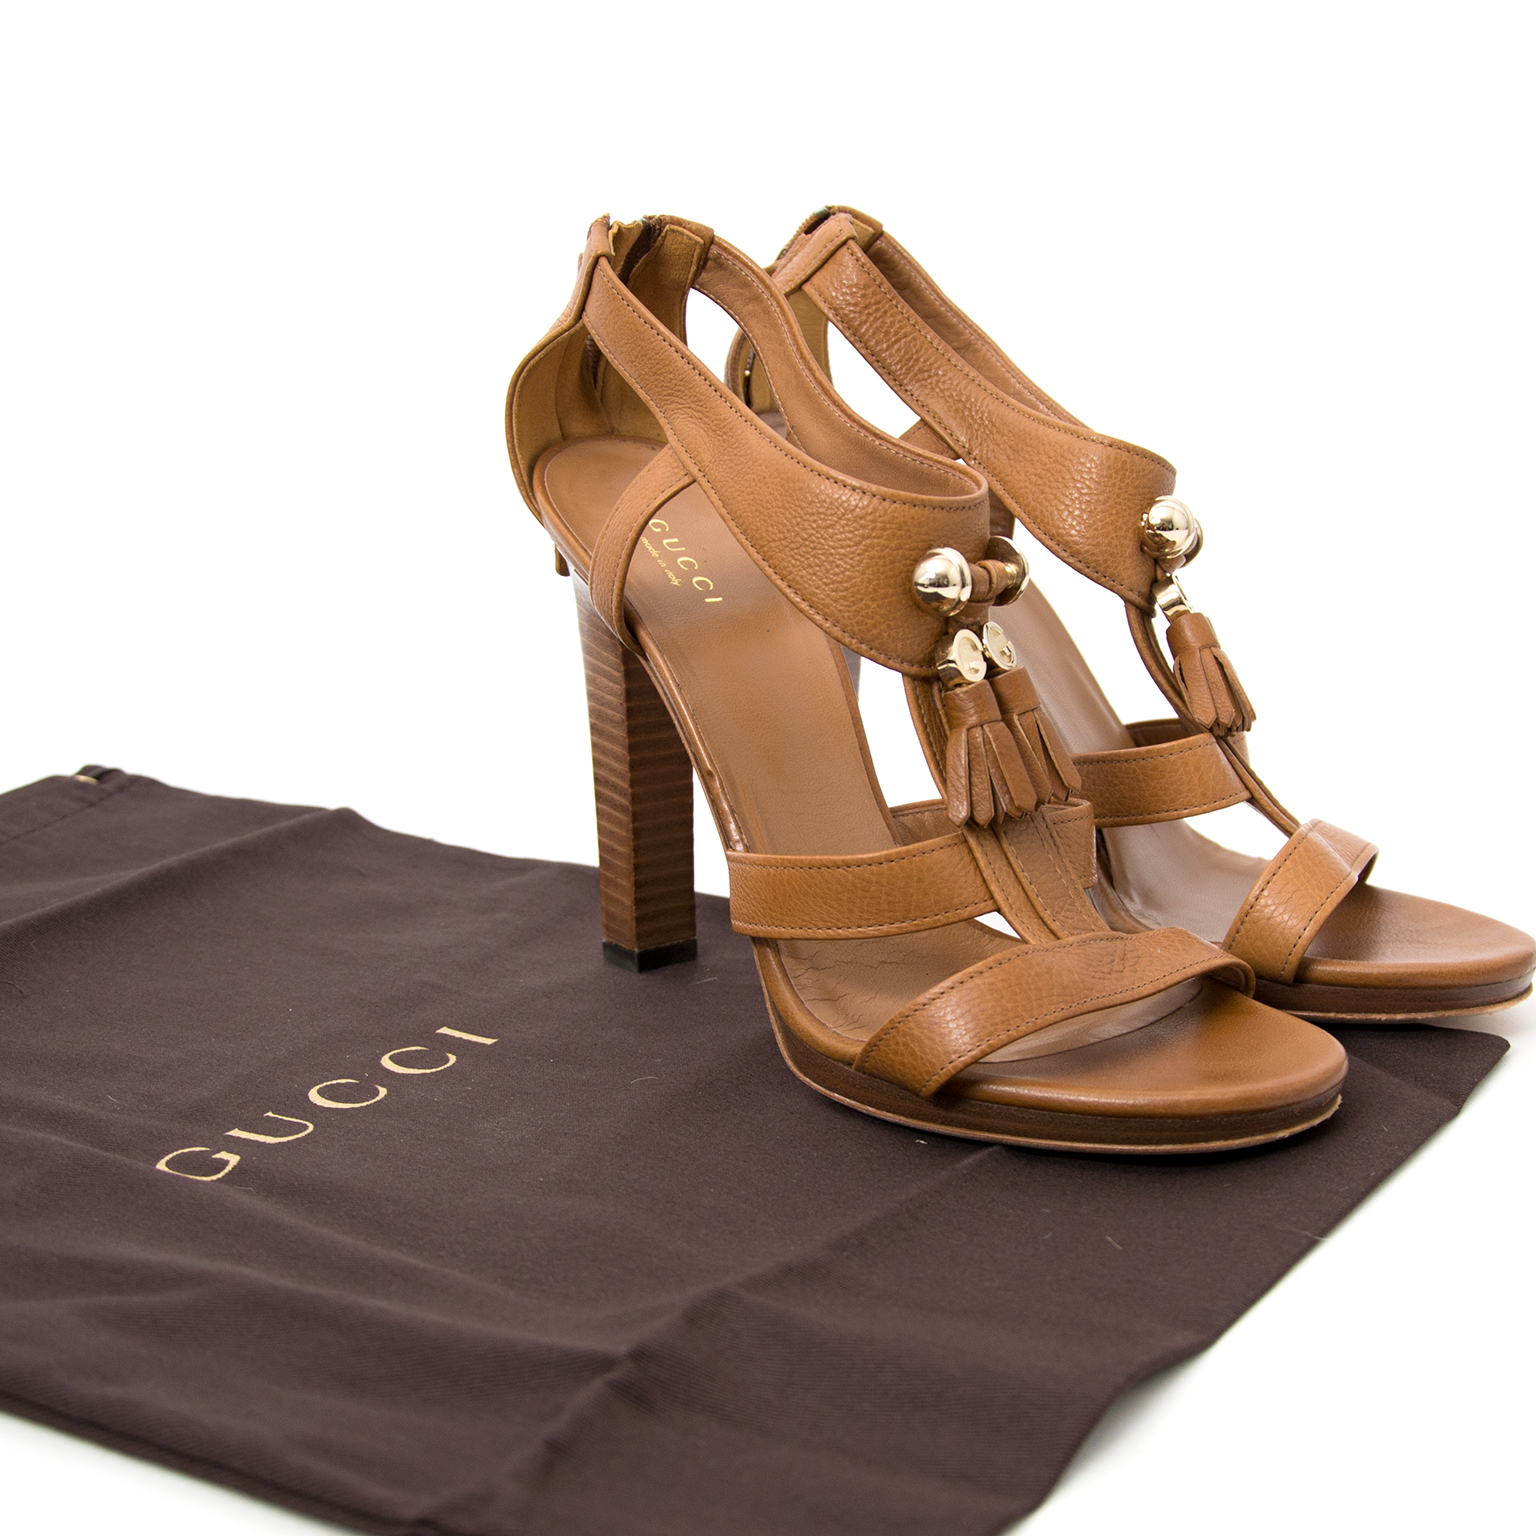 Gucci Marrakech High Heel Sandal now online at labellov.com for the best price